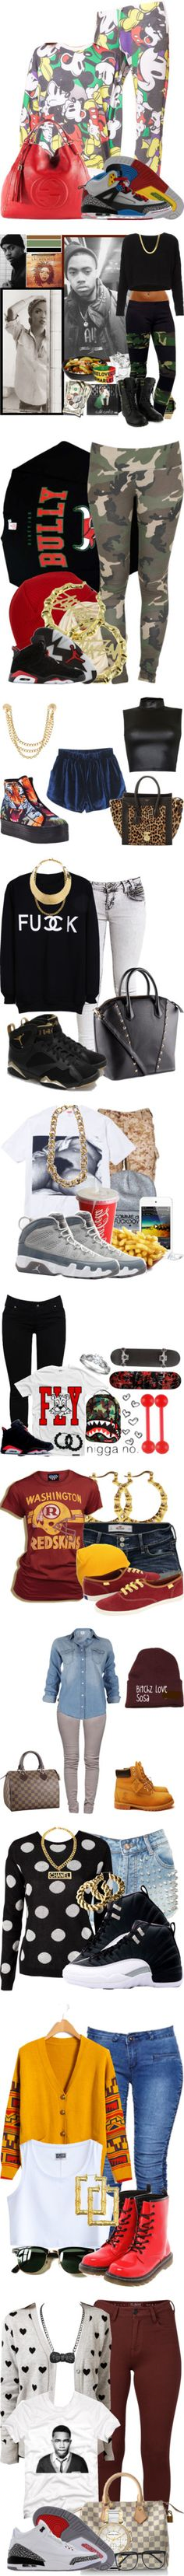 """""""Trill Lady."""" by mrkr-lawson ❤ liked on Polyvore"""